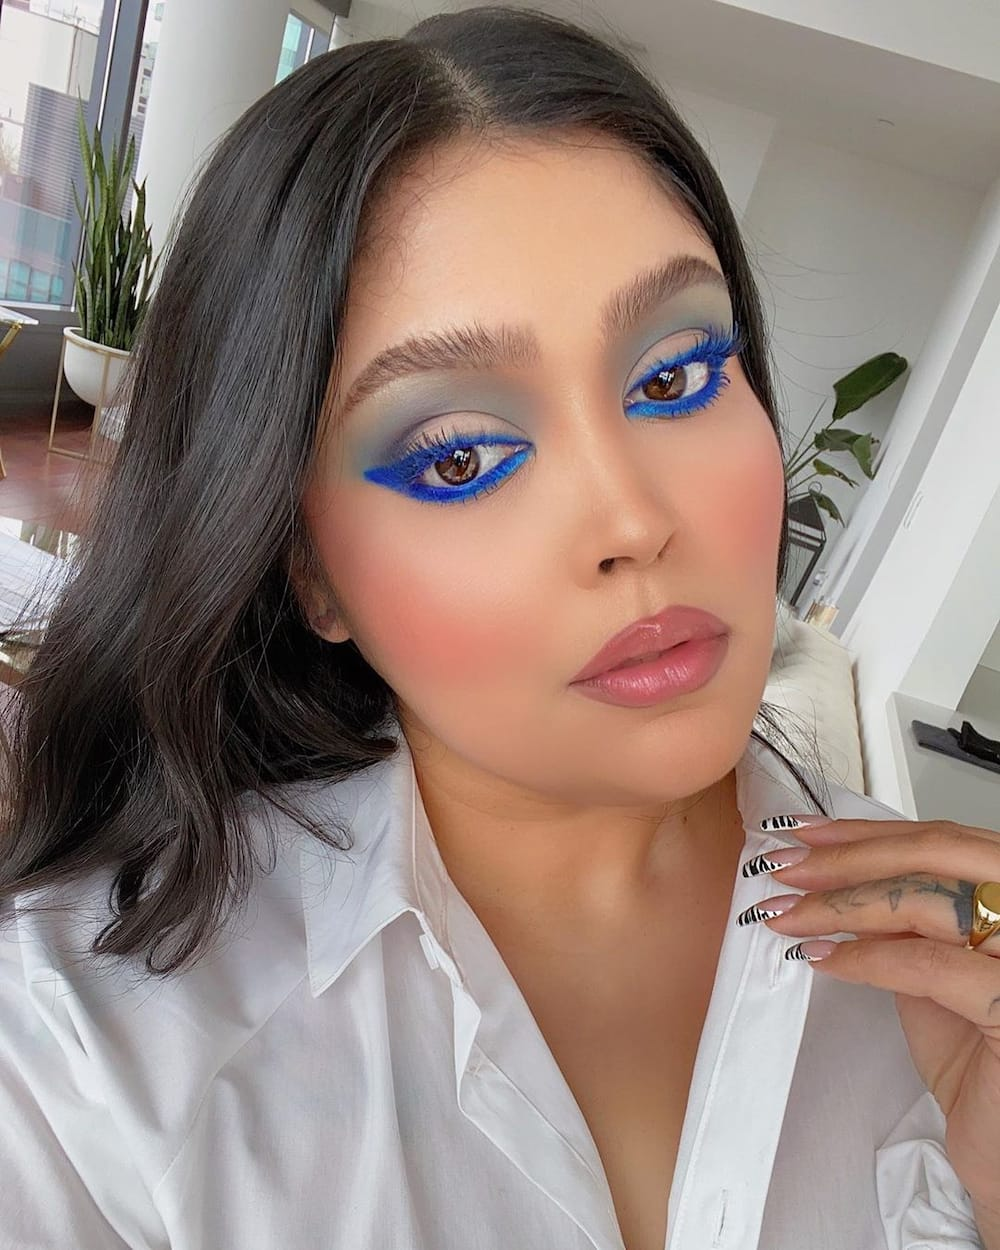 Who is the highest paid makeup YouTuber?